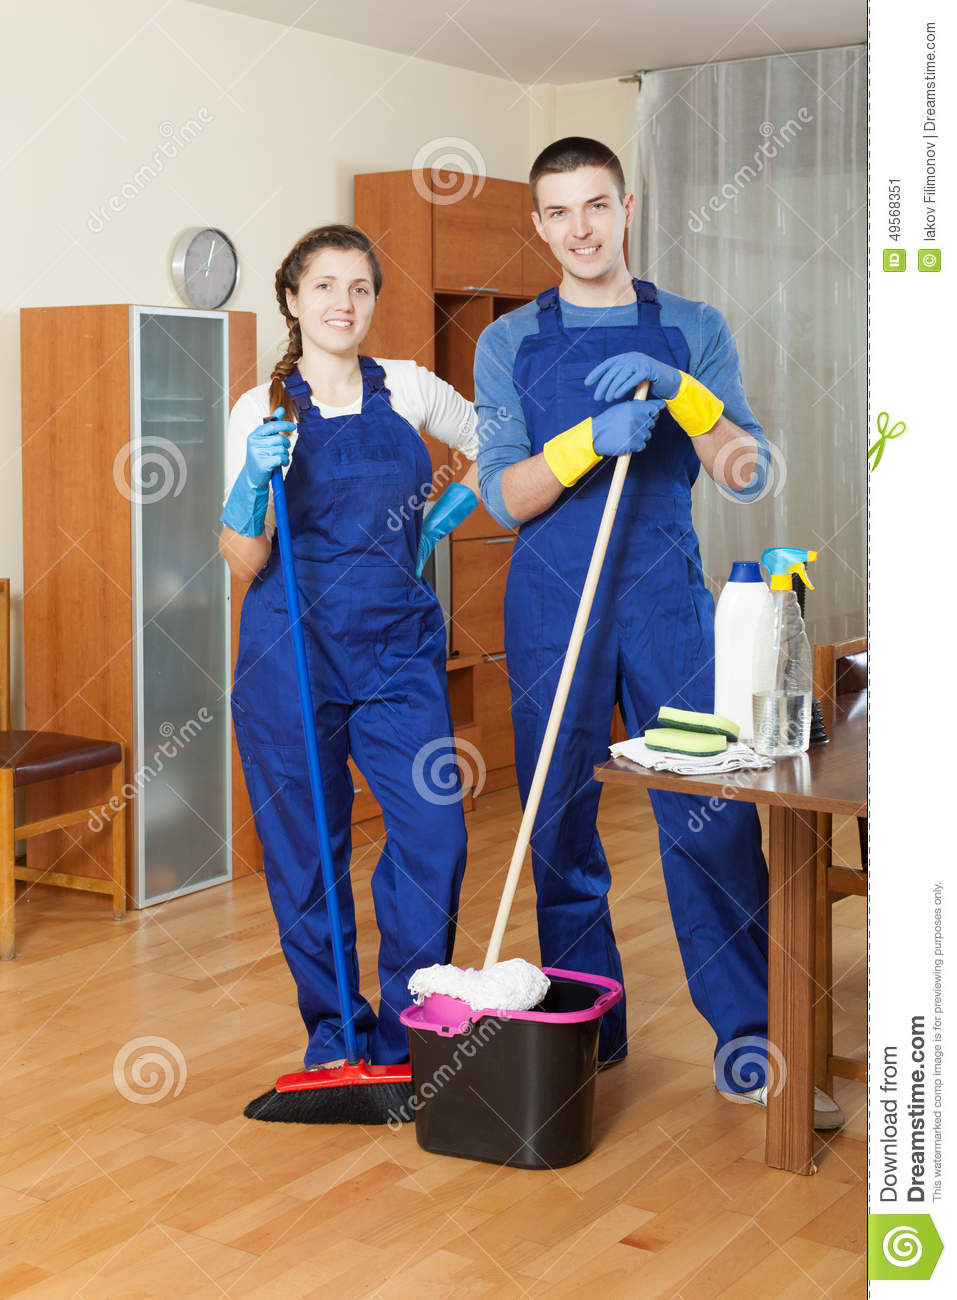 Cleaning team stock image image of houseman housecleaner for House cleaning stock photos